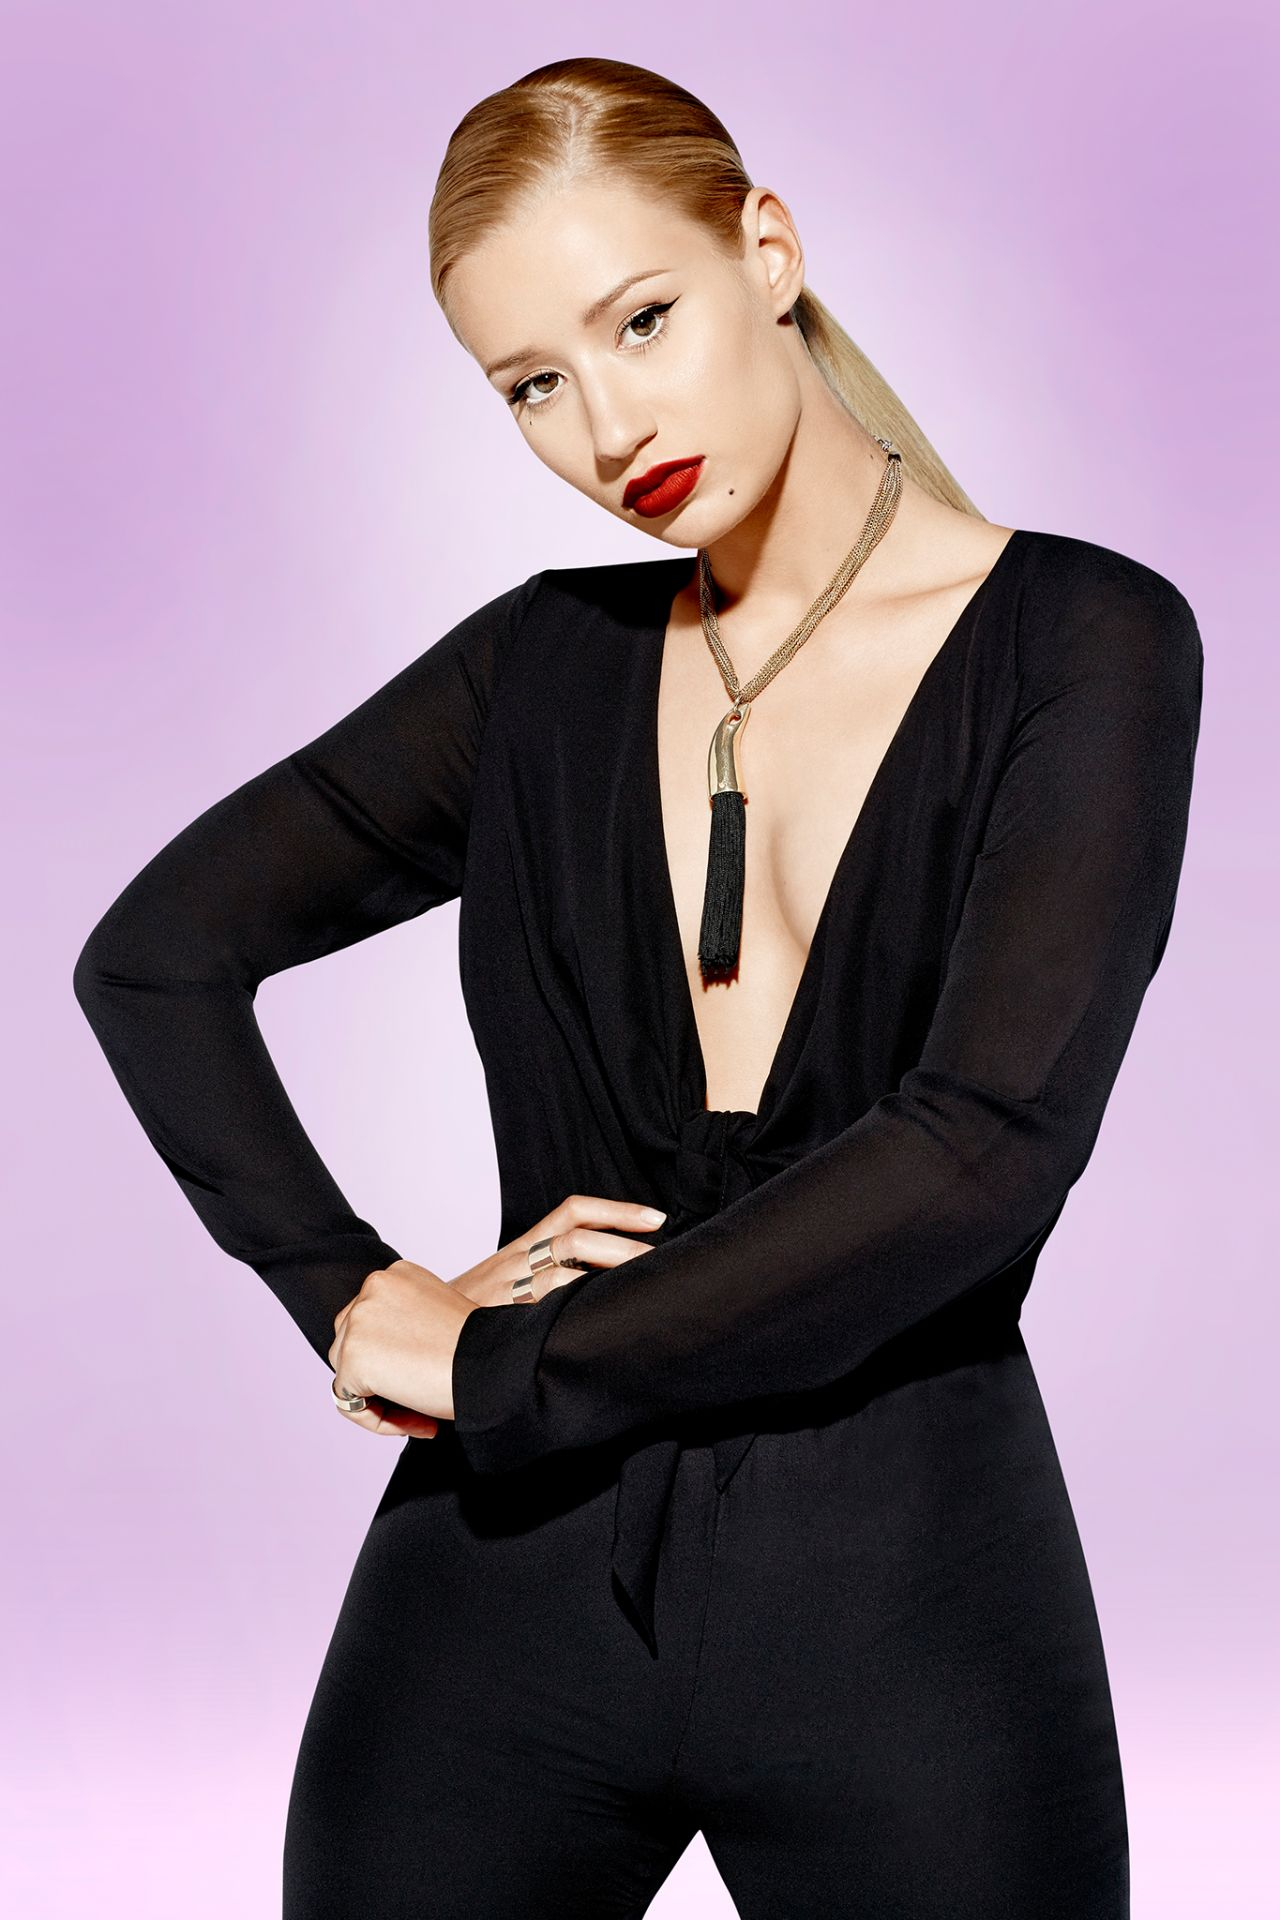 Iggy Azalea Photoshoot For Forever 21 2014